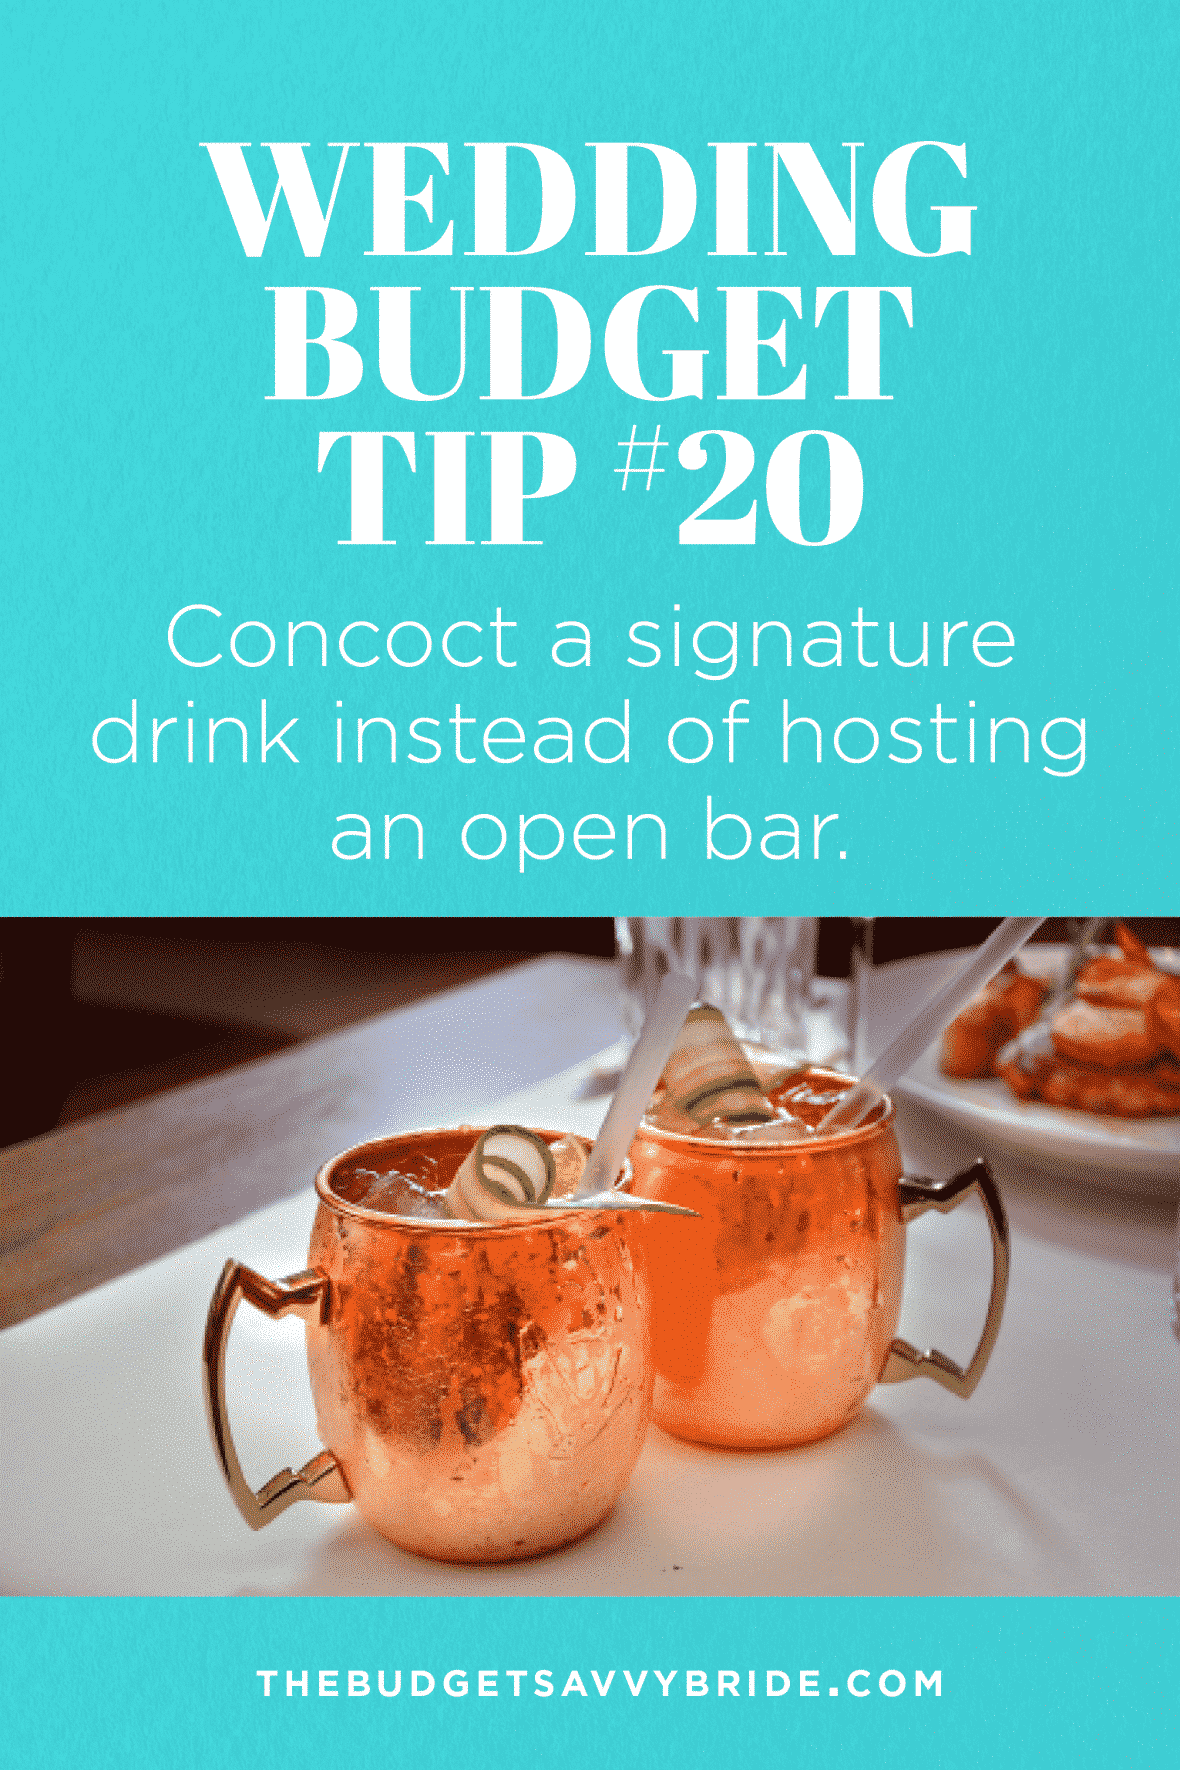 Craft a signature cocktail for your wedding to save money on your reception expenses. Don't miss this round up of some delicious cocktail recipes!